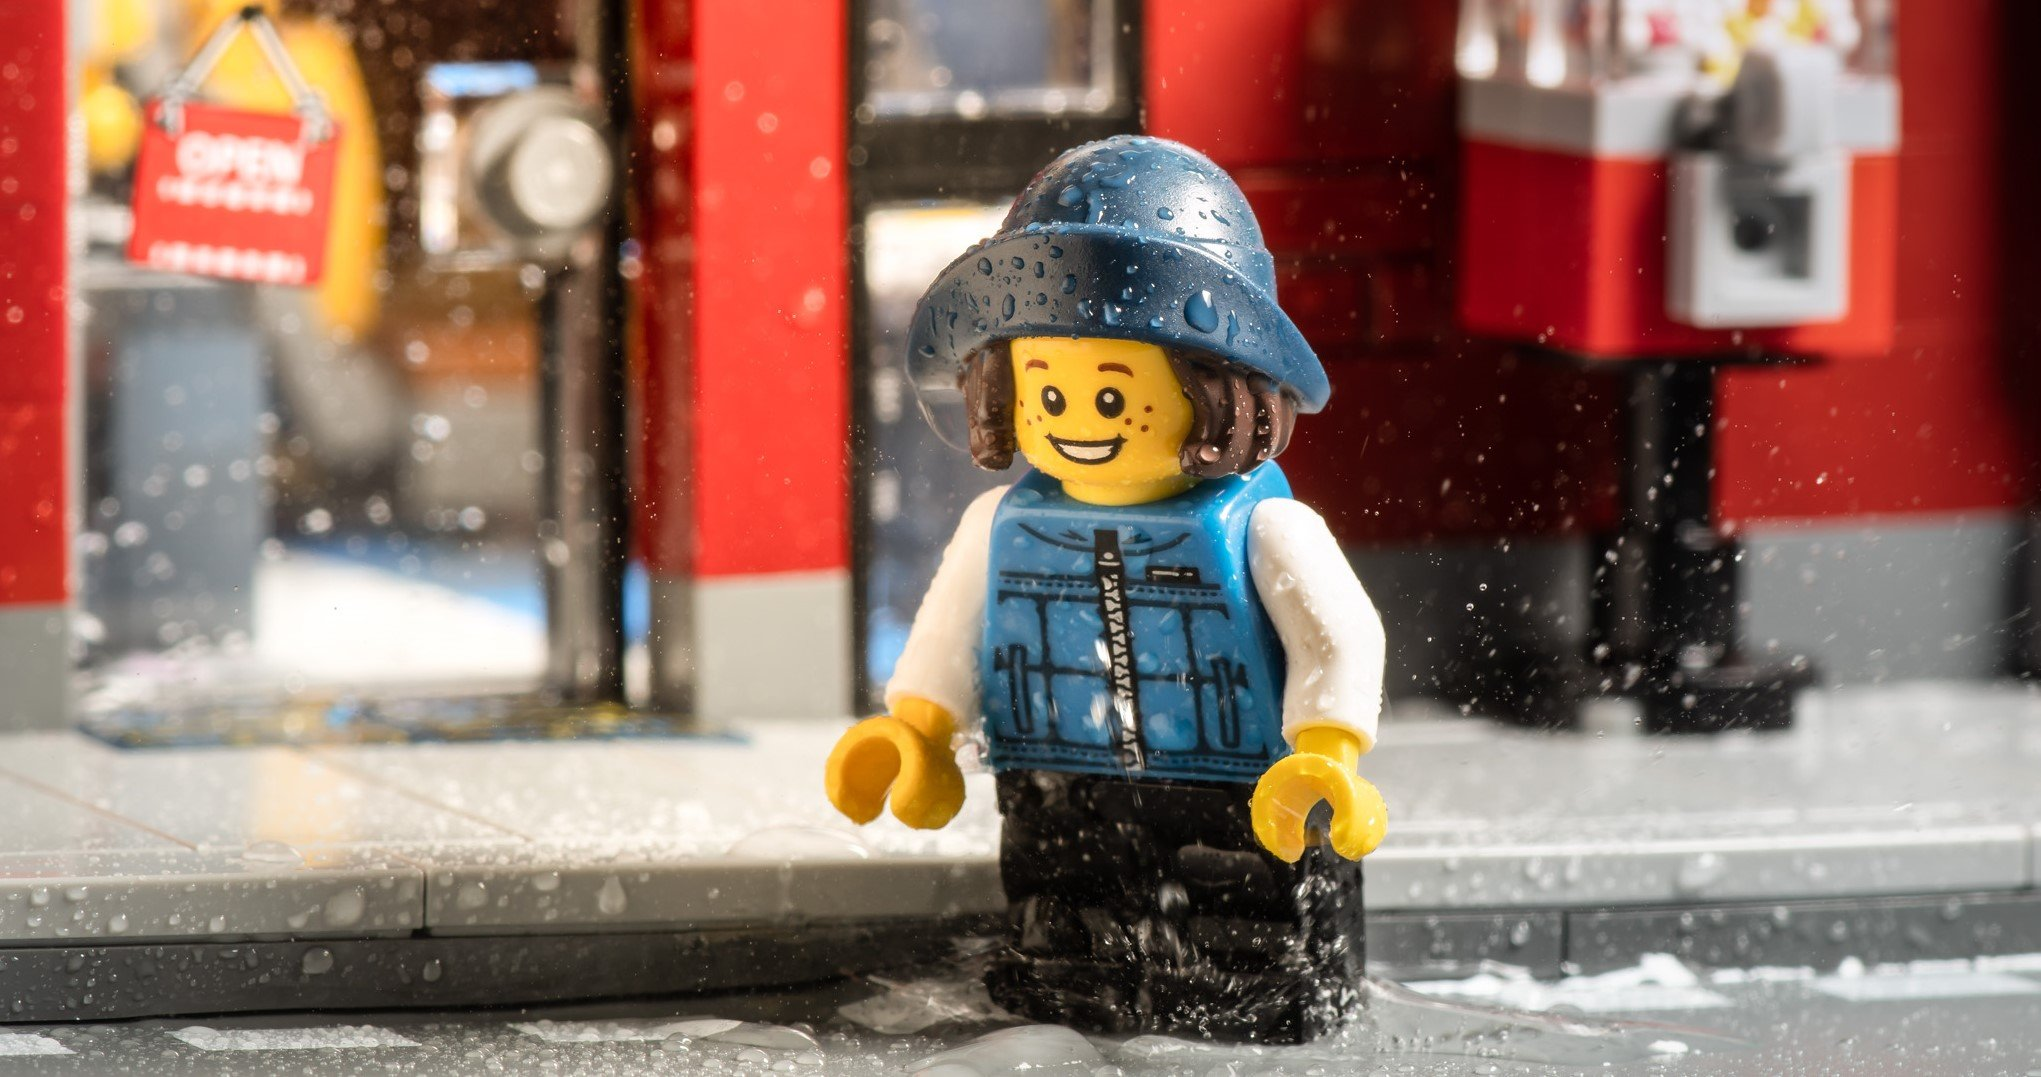 This LEGO has the right idea, jumping would fit into a HIIT workout. No rain required.